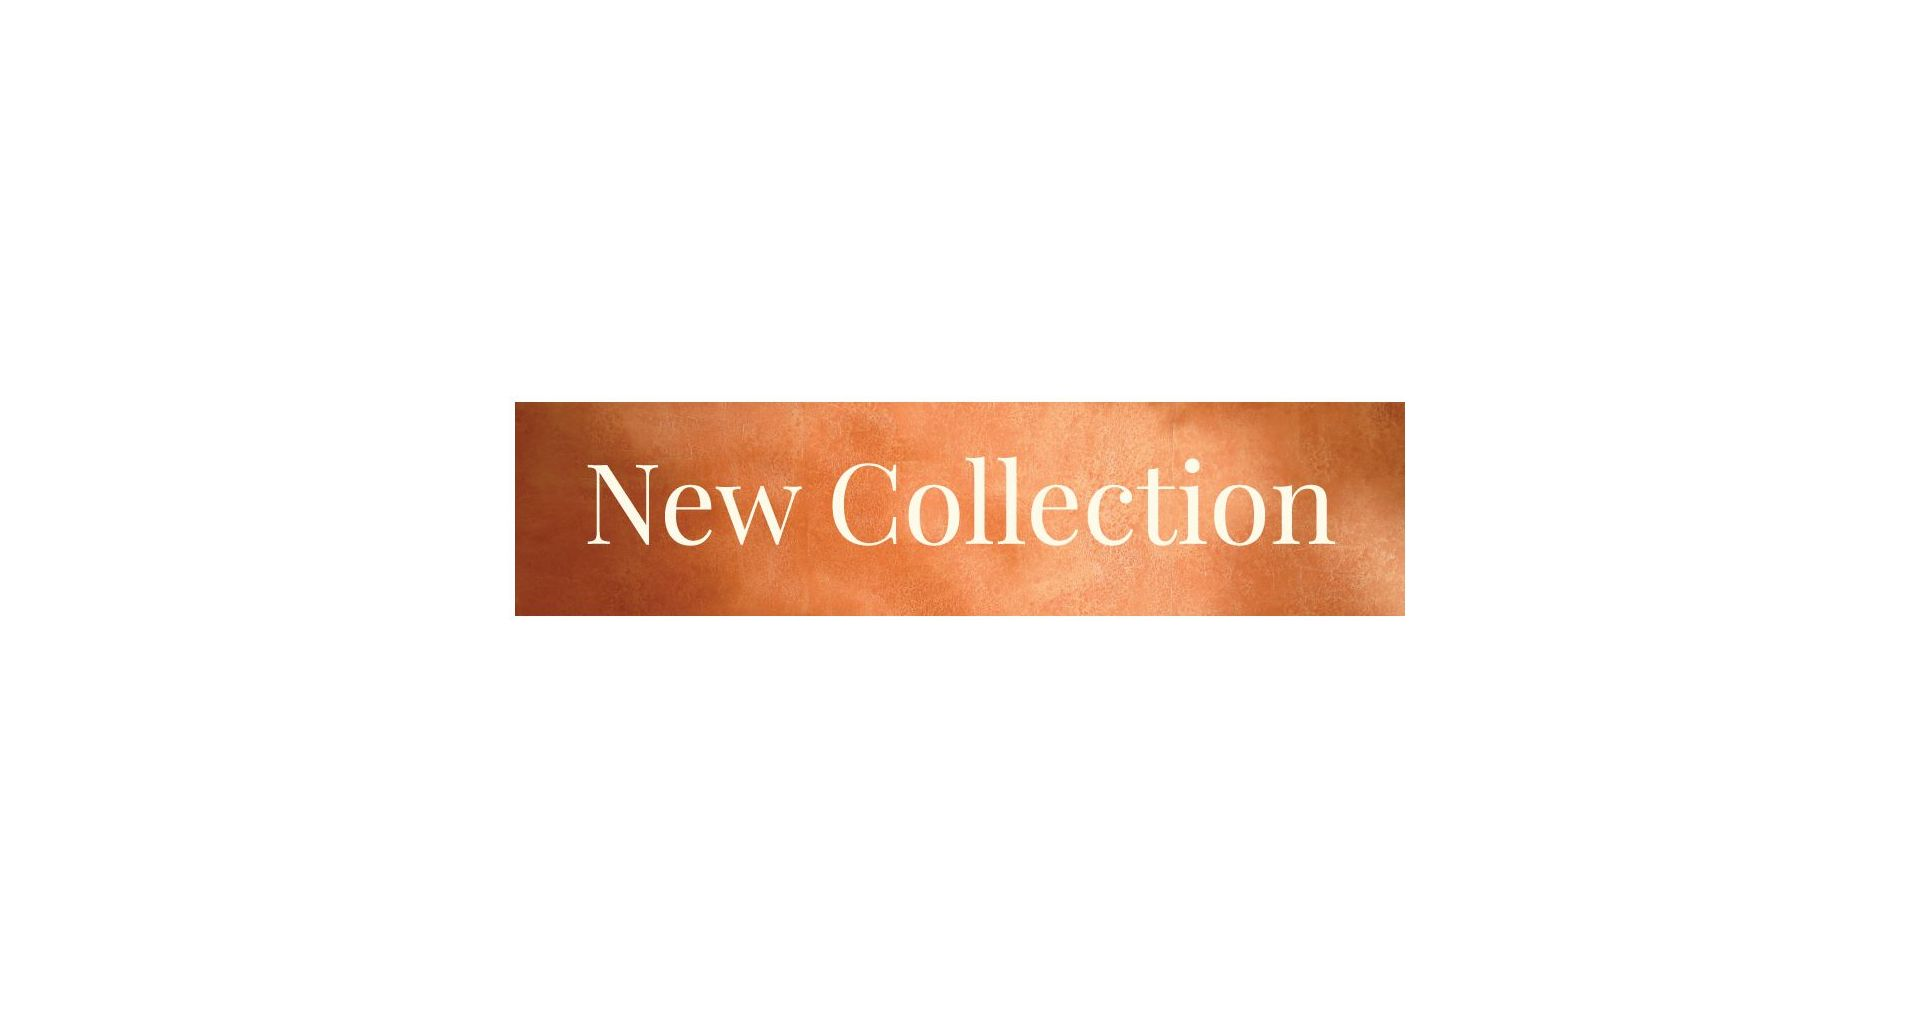 Discover the new fashion collection